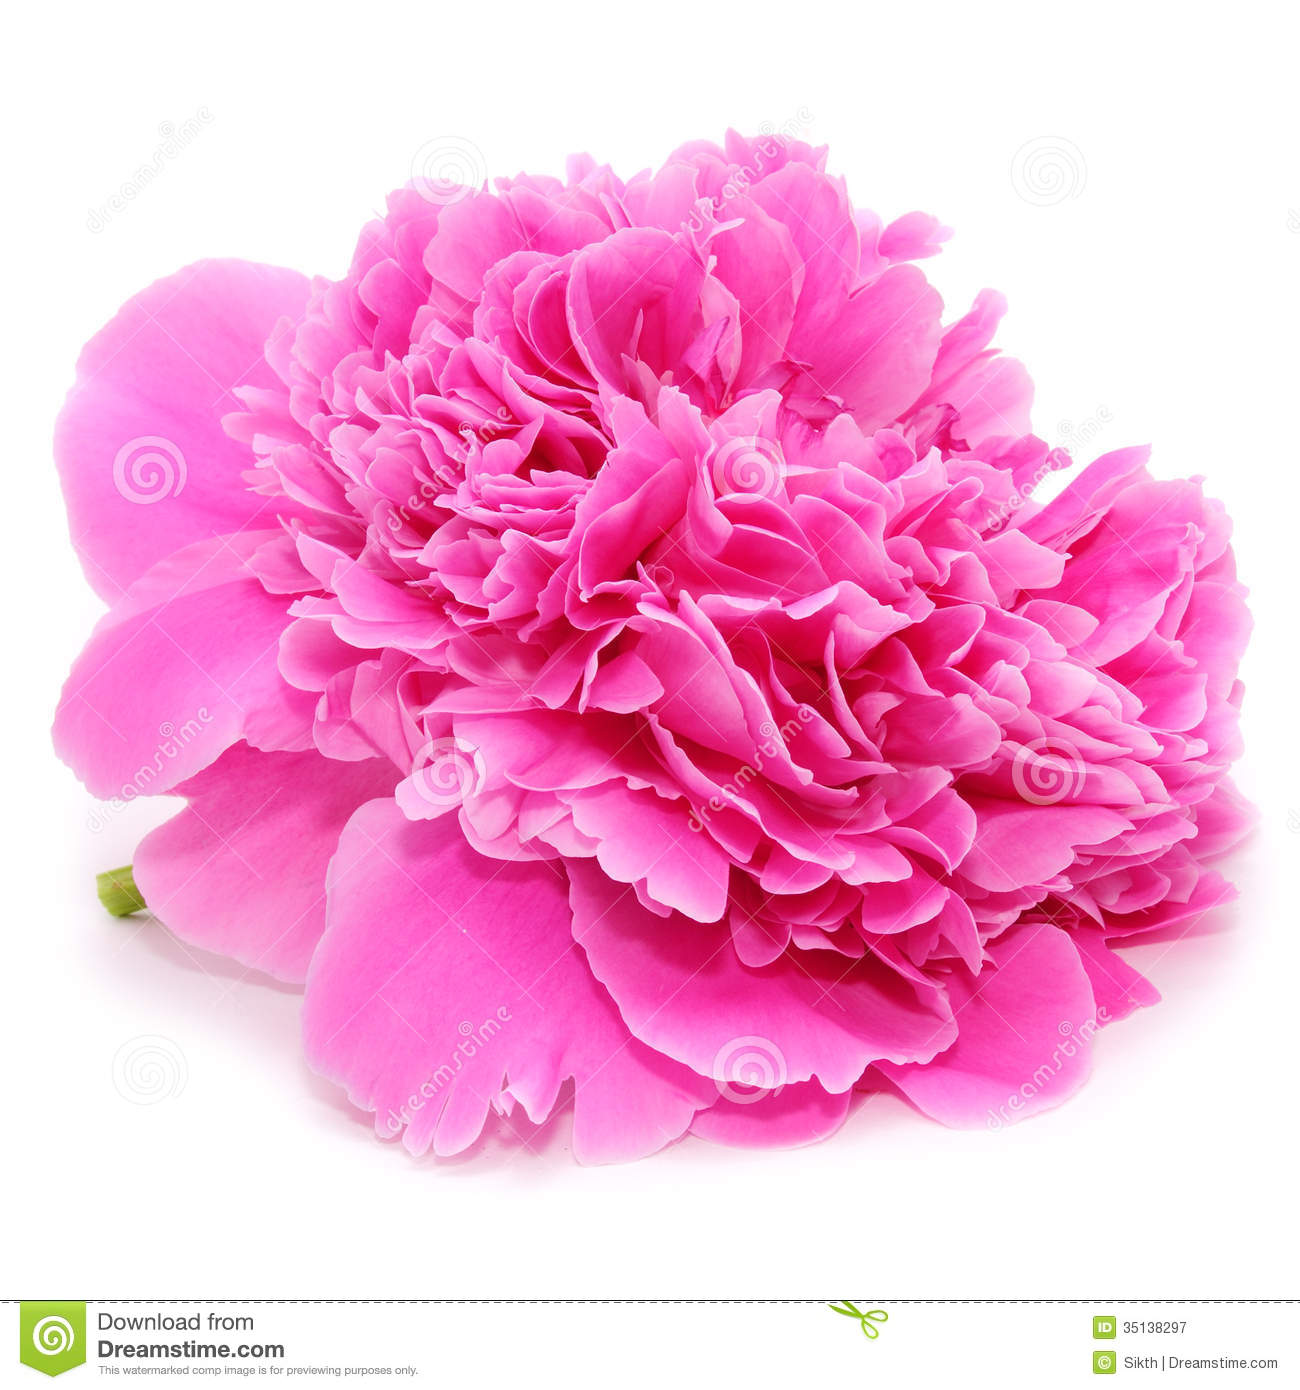 pink peony flower isolated on white background royalty. Black Bedroom Furniture Sets. Home Design Ideas